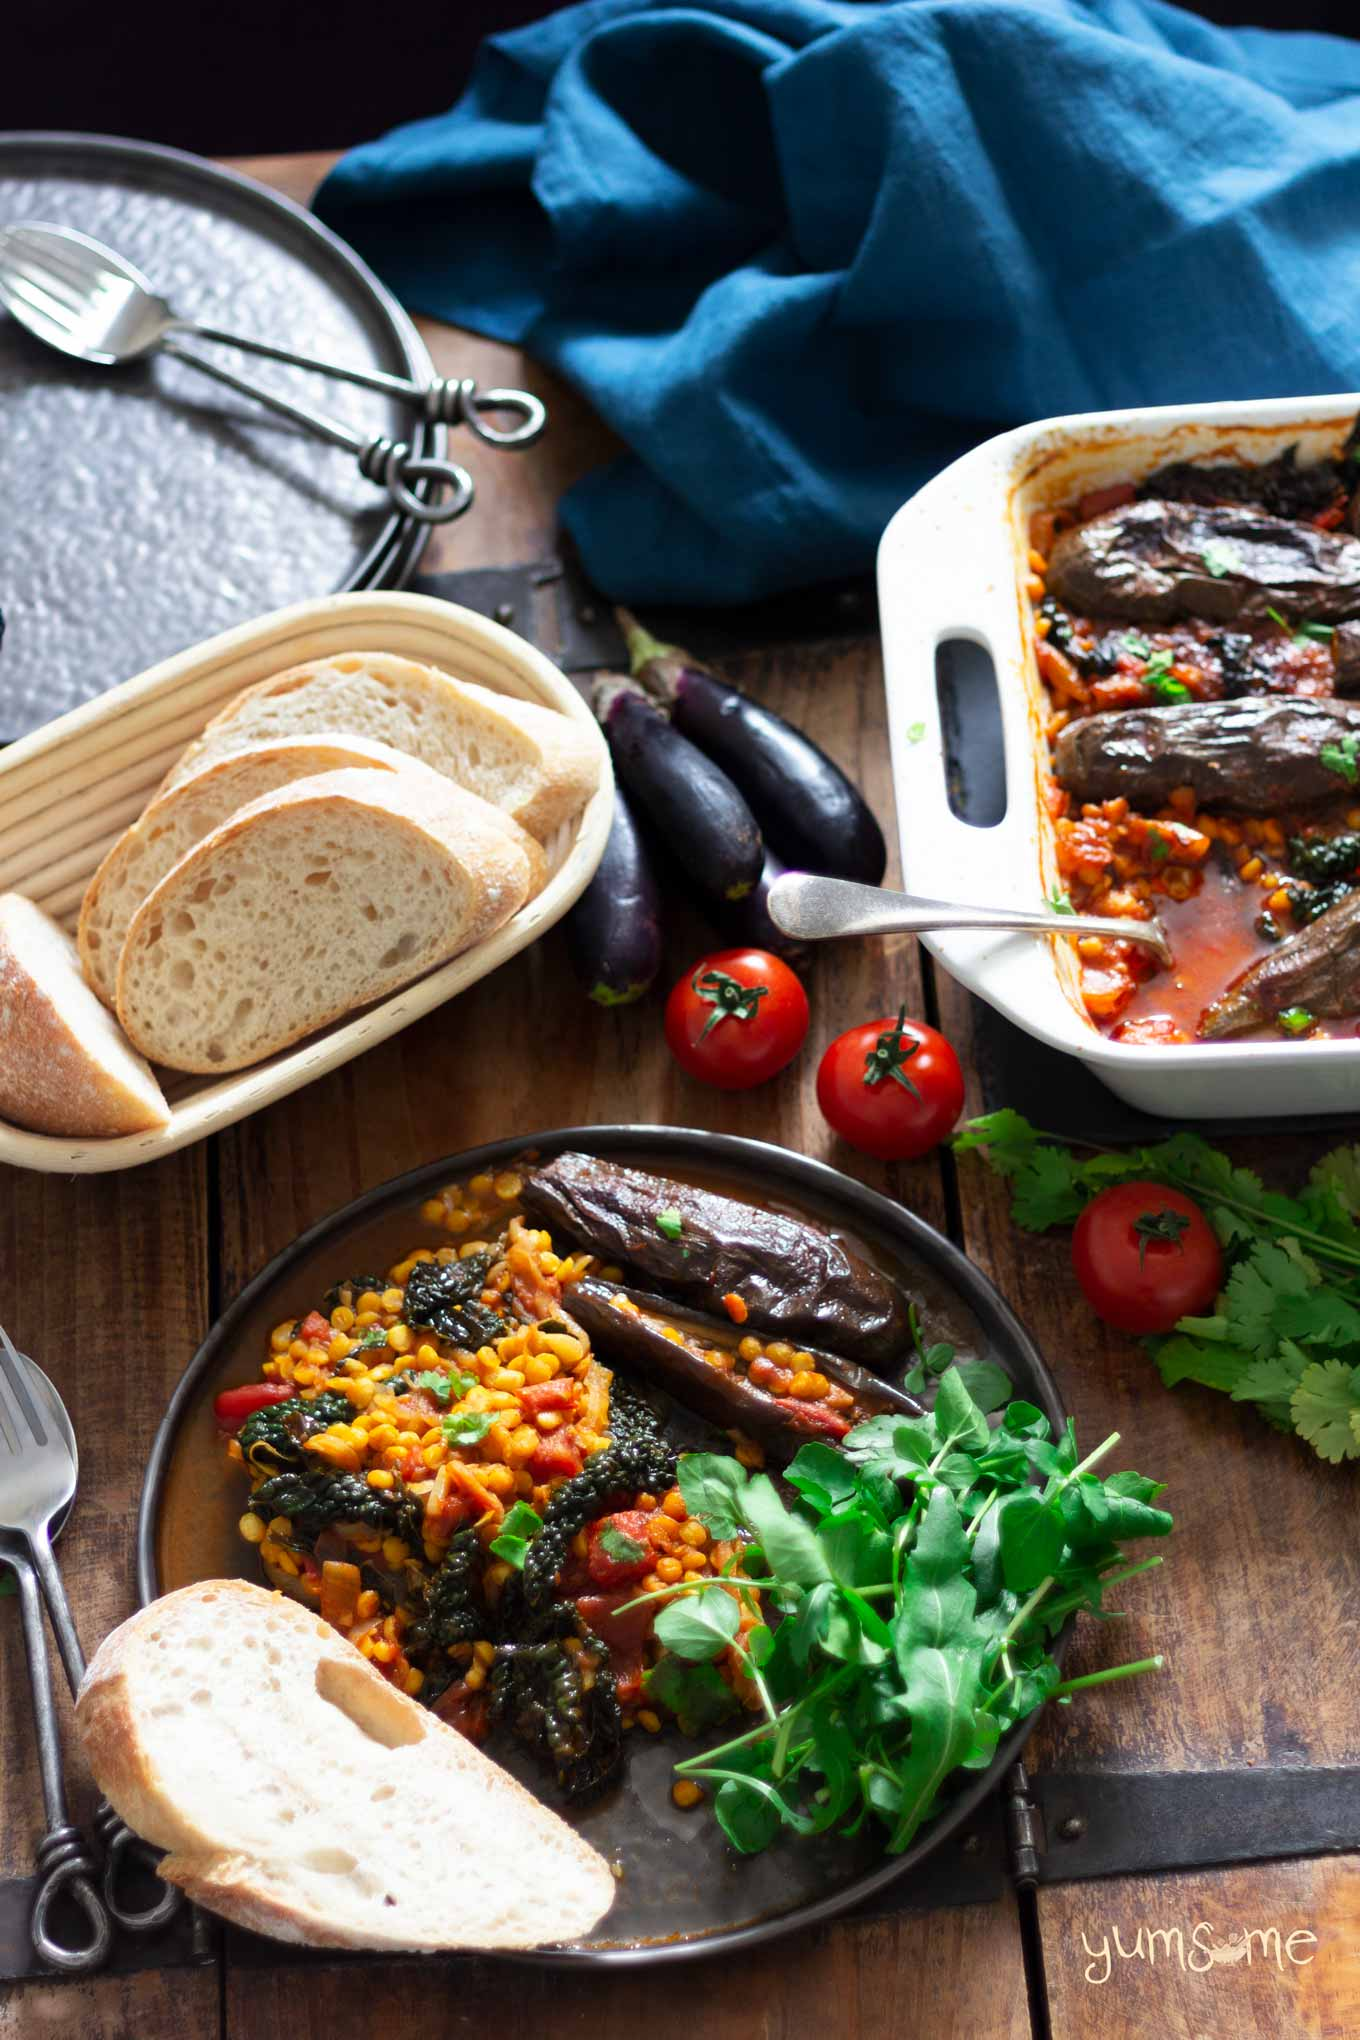 Spicy dal, aubergine, and kale casserole on a plate, plus a basket of sourdough bread.